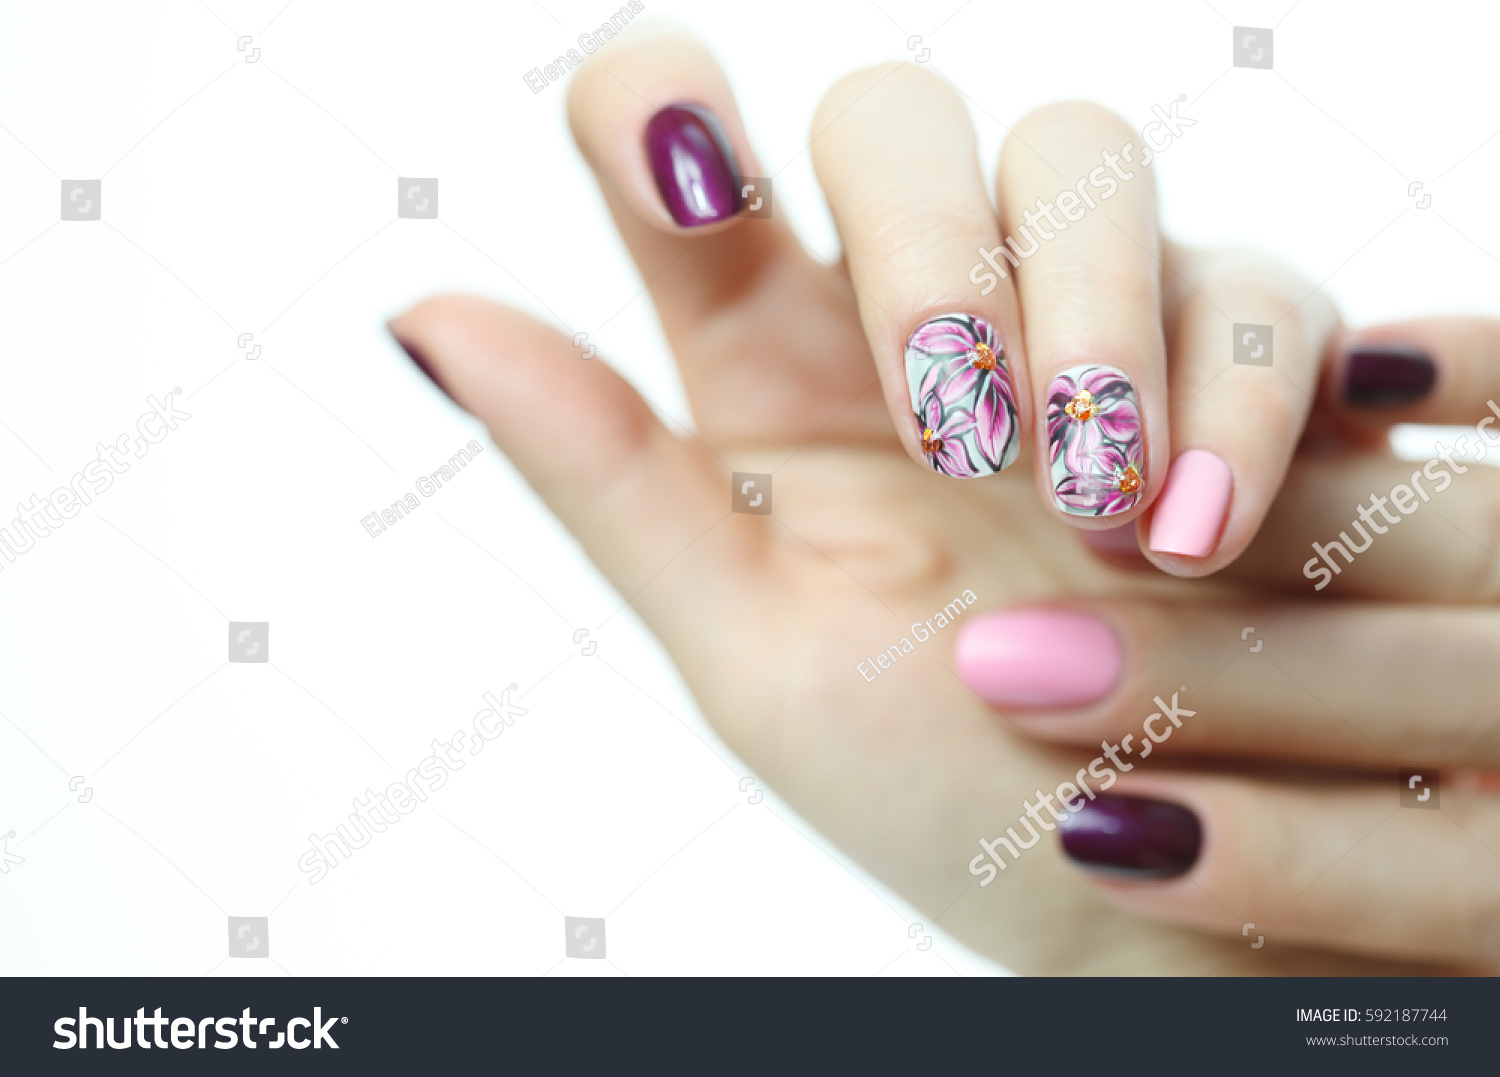 Nail Design Manicure Nail Paint Beautiful Stock Photo (Download Now ...